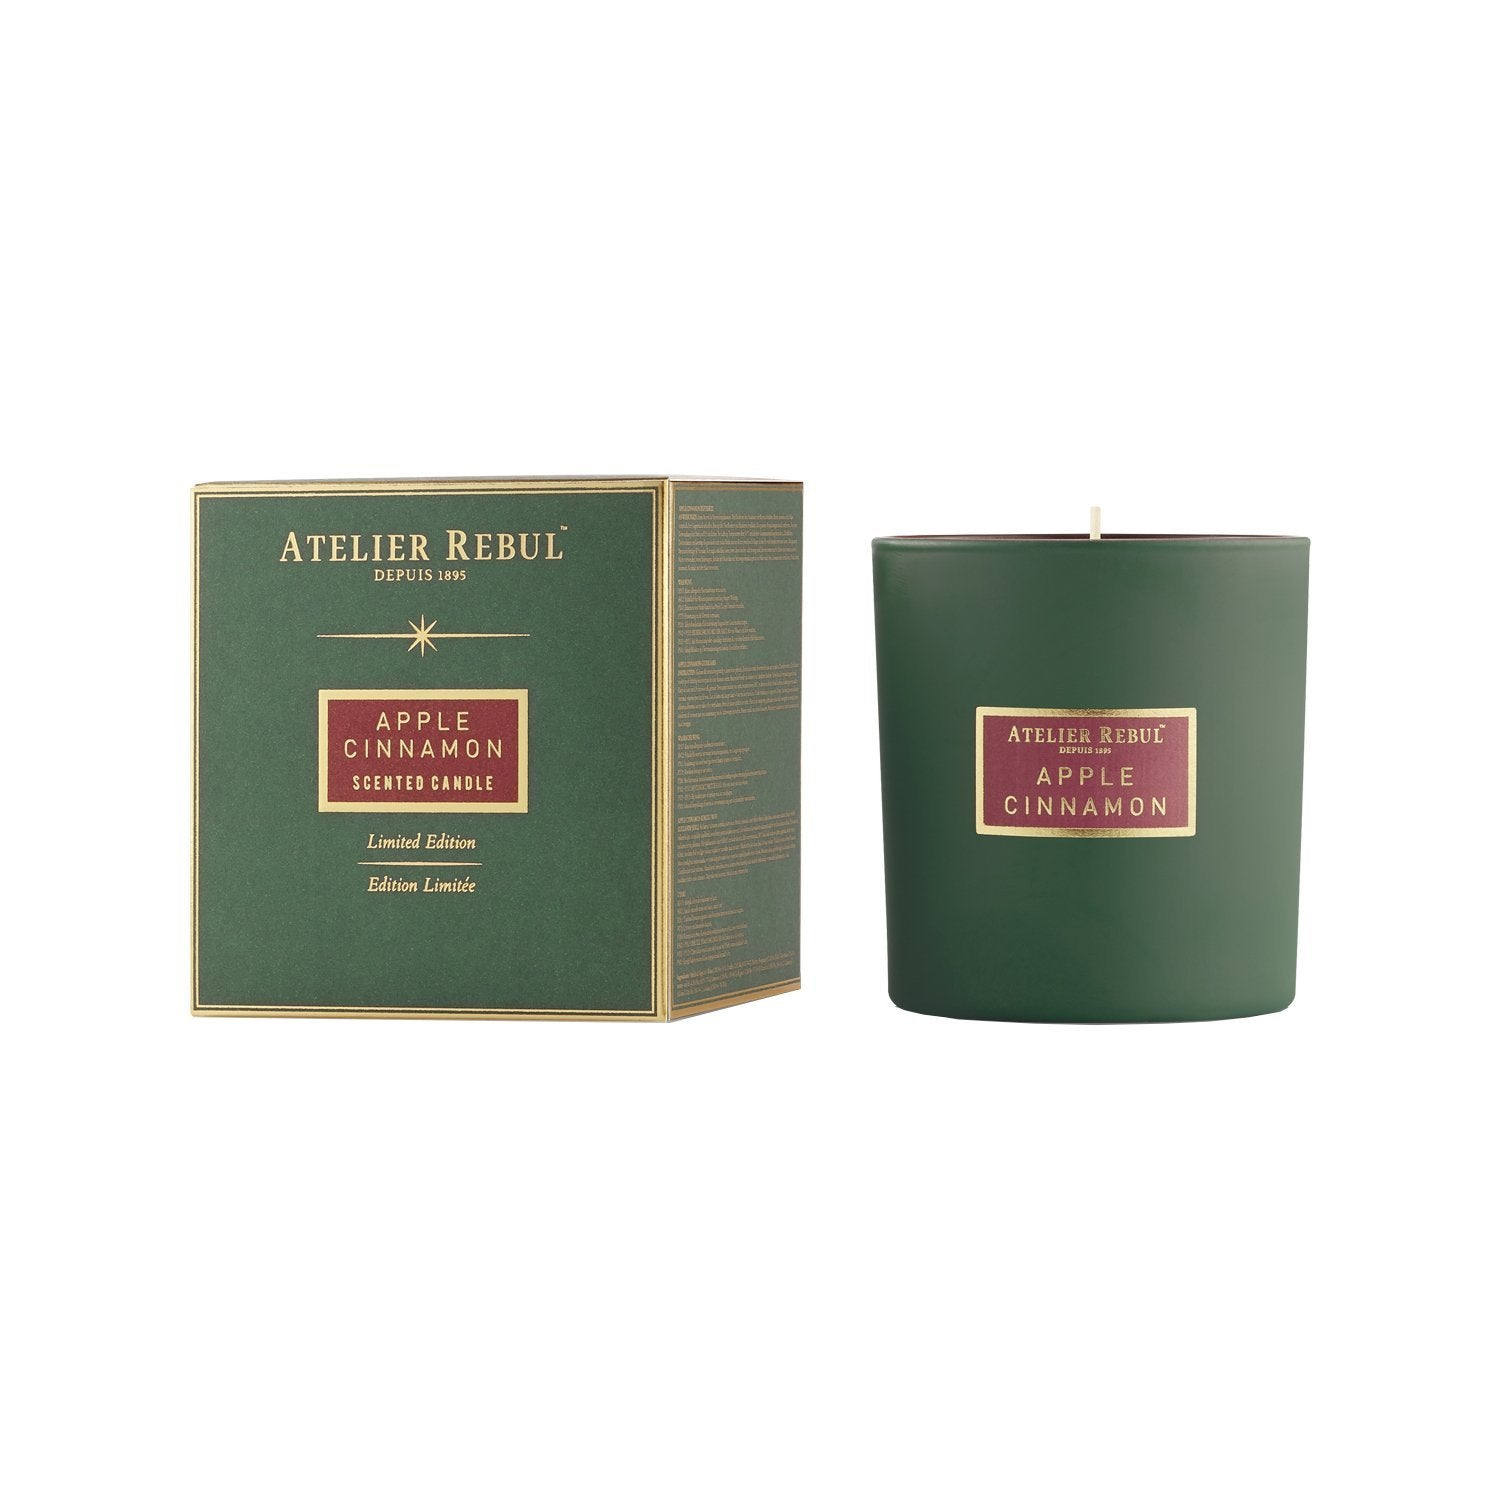 Apple Cinnamon Scented Candle 210g - Atelier Rebul